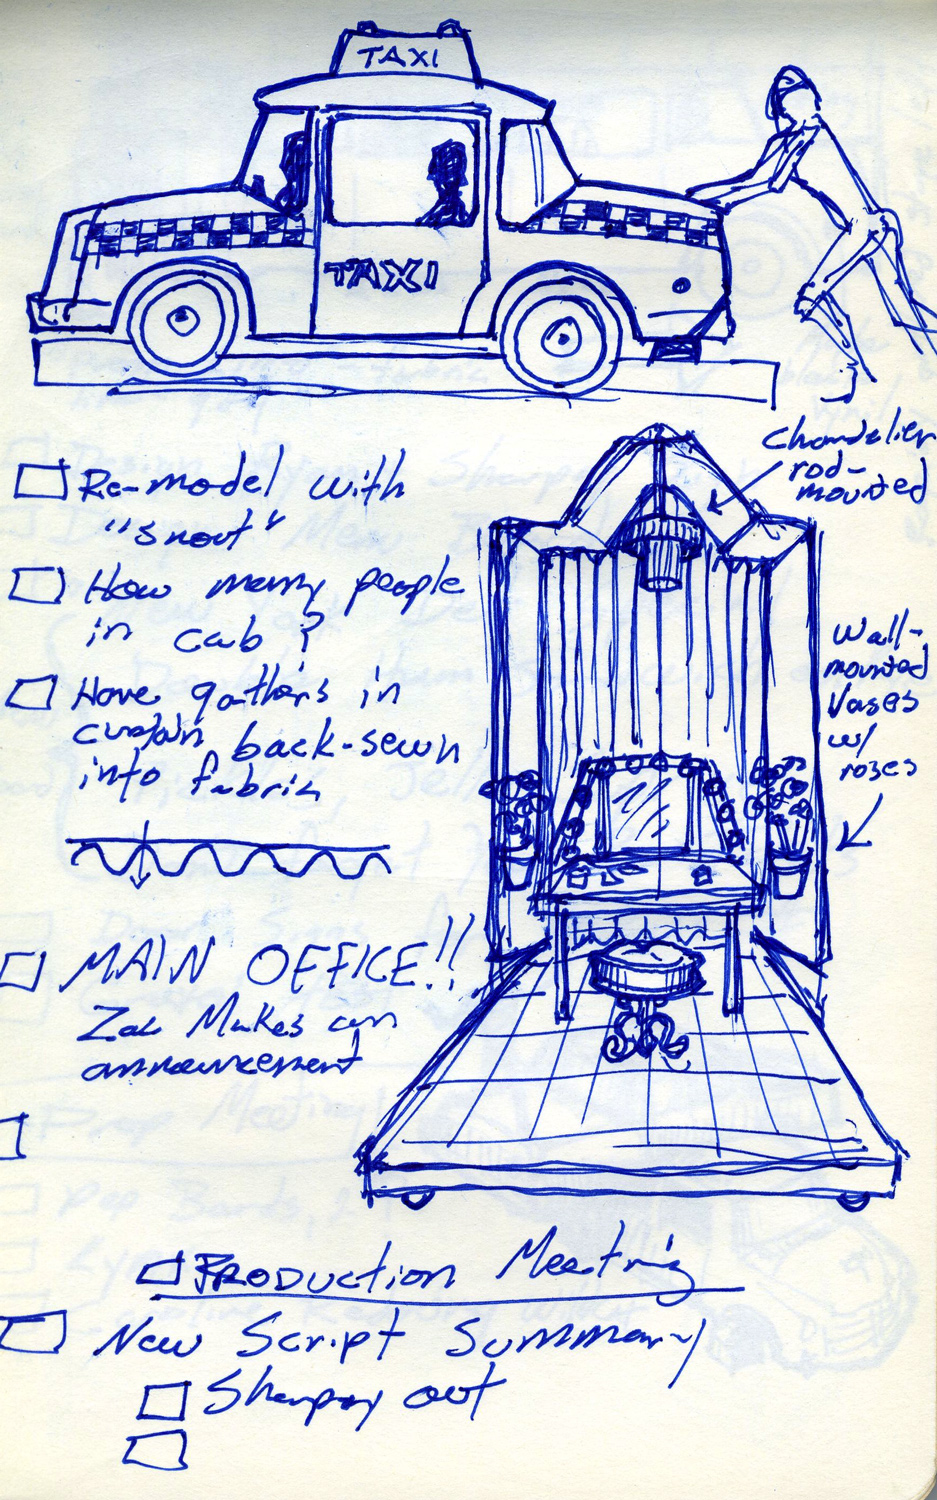 """The very first notebook sketch for the """"Taxi/dressing room"""" element for the """"I Want it All"""" musical number in """"High School Musical 3"""" (2008). The idea was that Sharpay (Ashley Tisdale) and Ryan (Lucas Grabeel) would cruise through a stylized Manhattan toward camera in their taxi, which then would open up to reveal Sharpay's fantasy Broadway dressing room."""